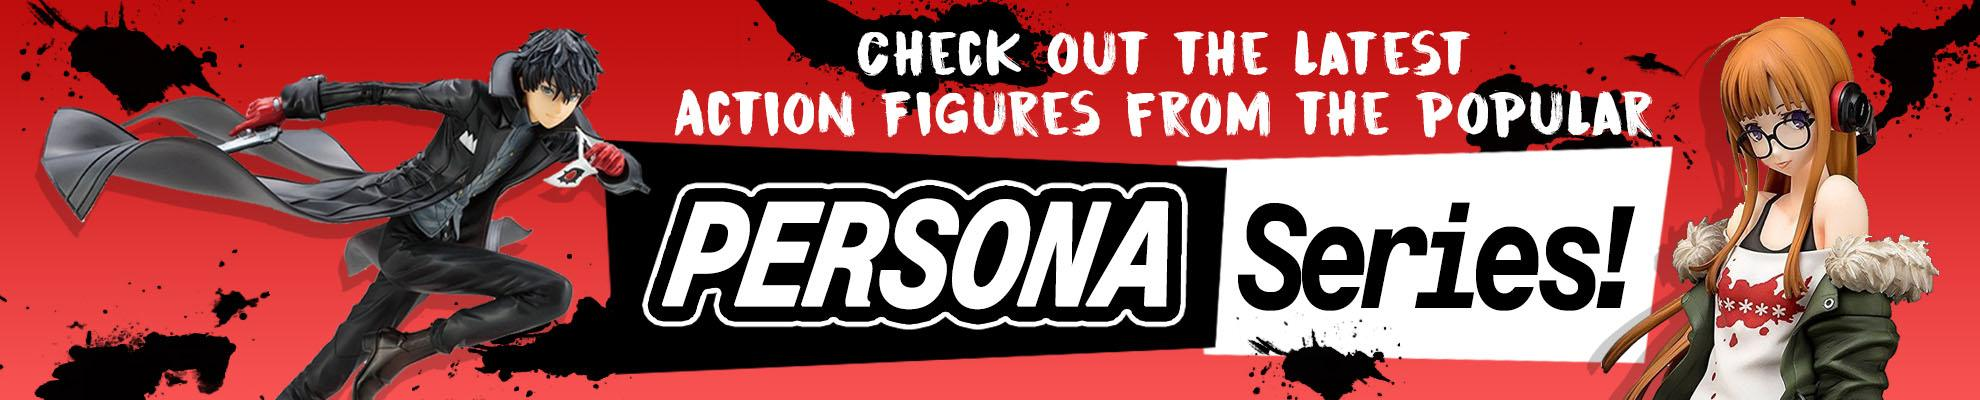 Plaza Japan Persona 5 Action Figures